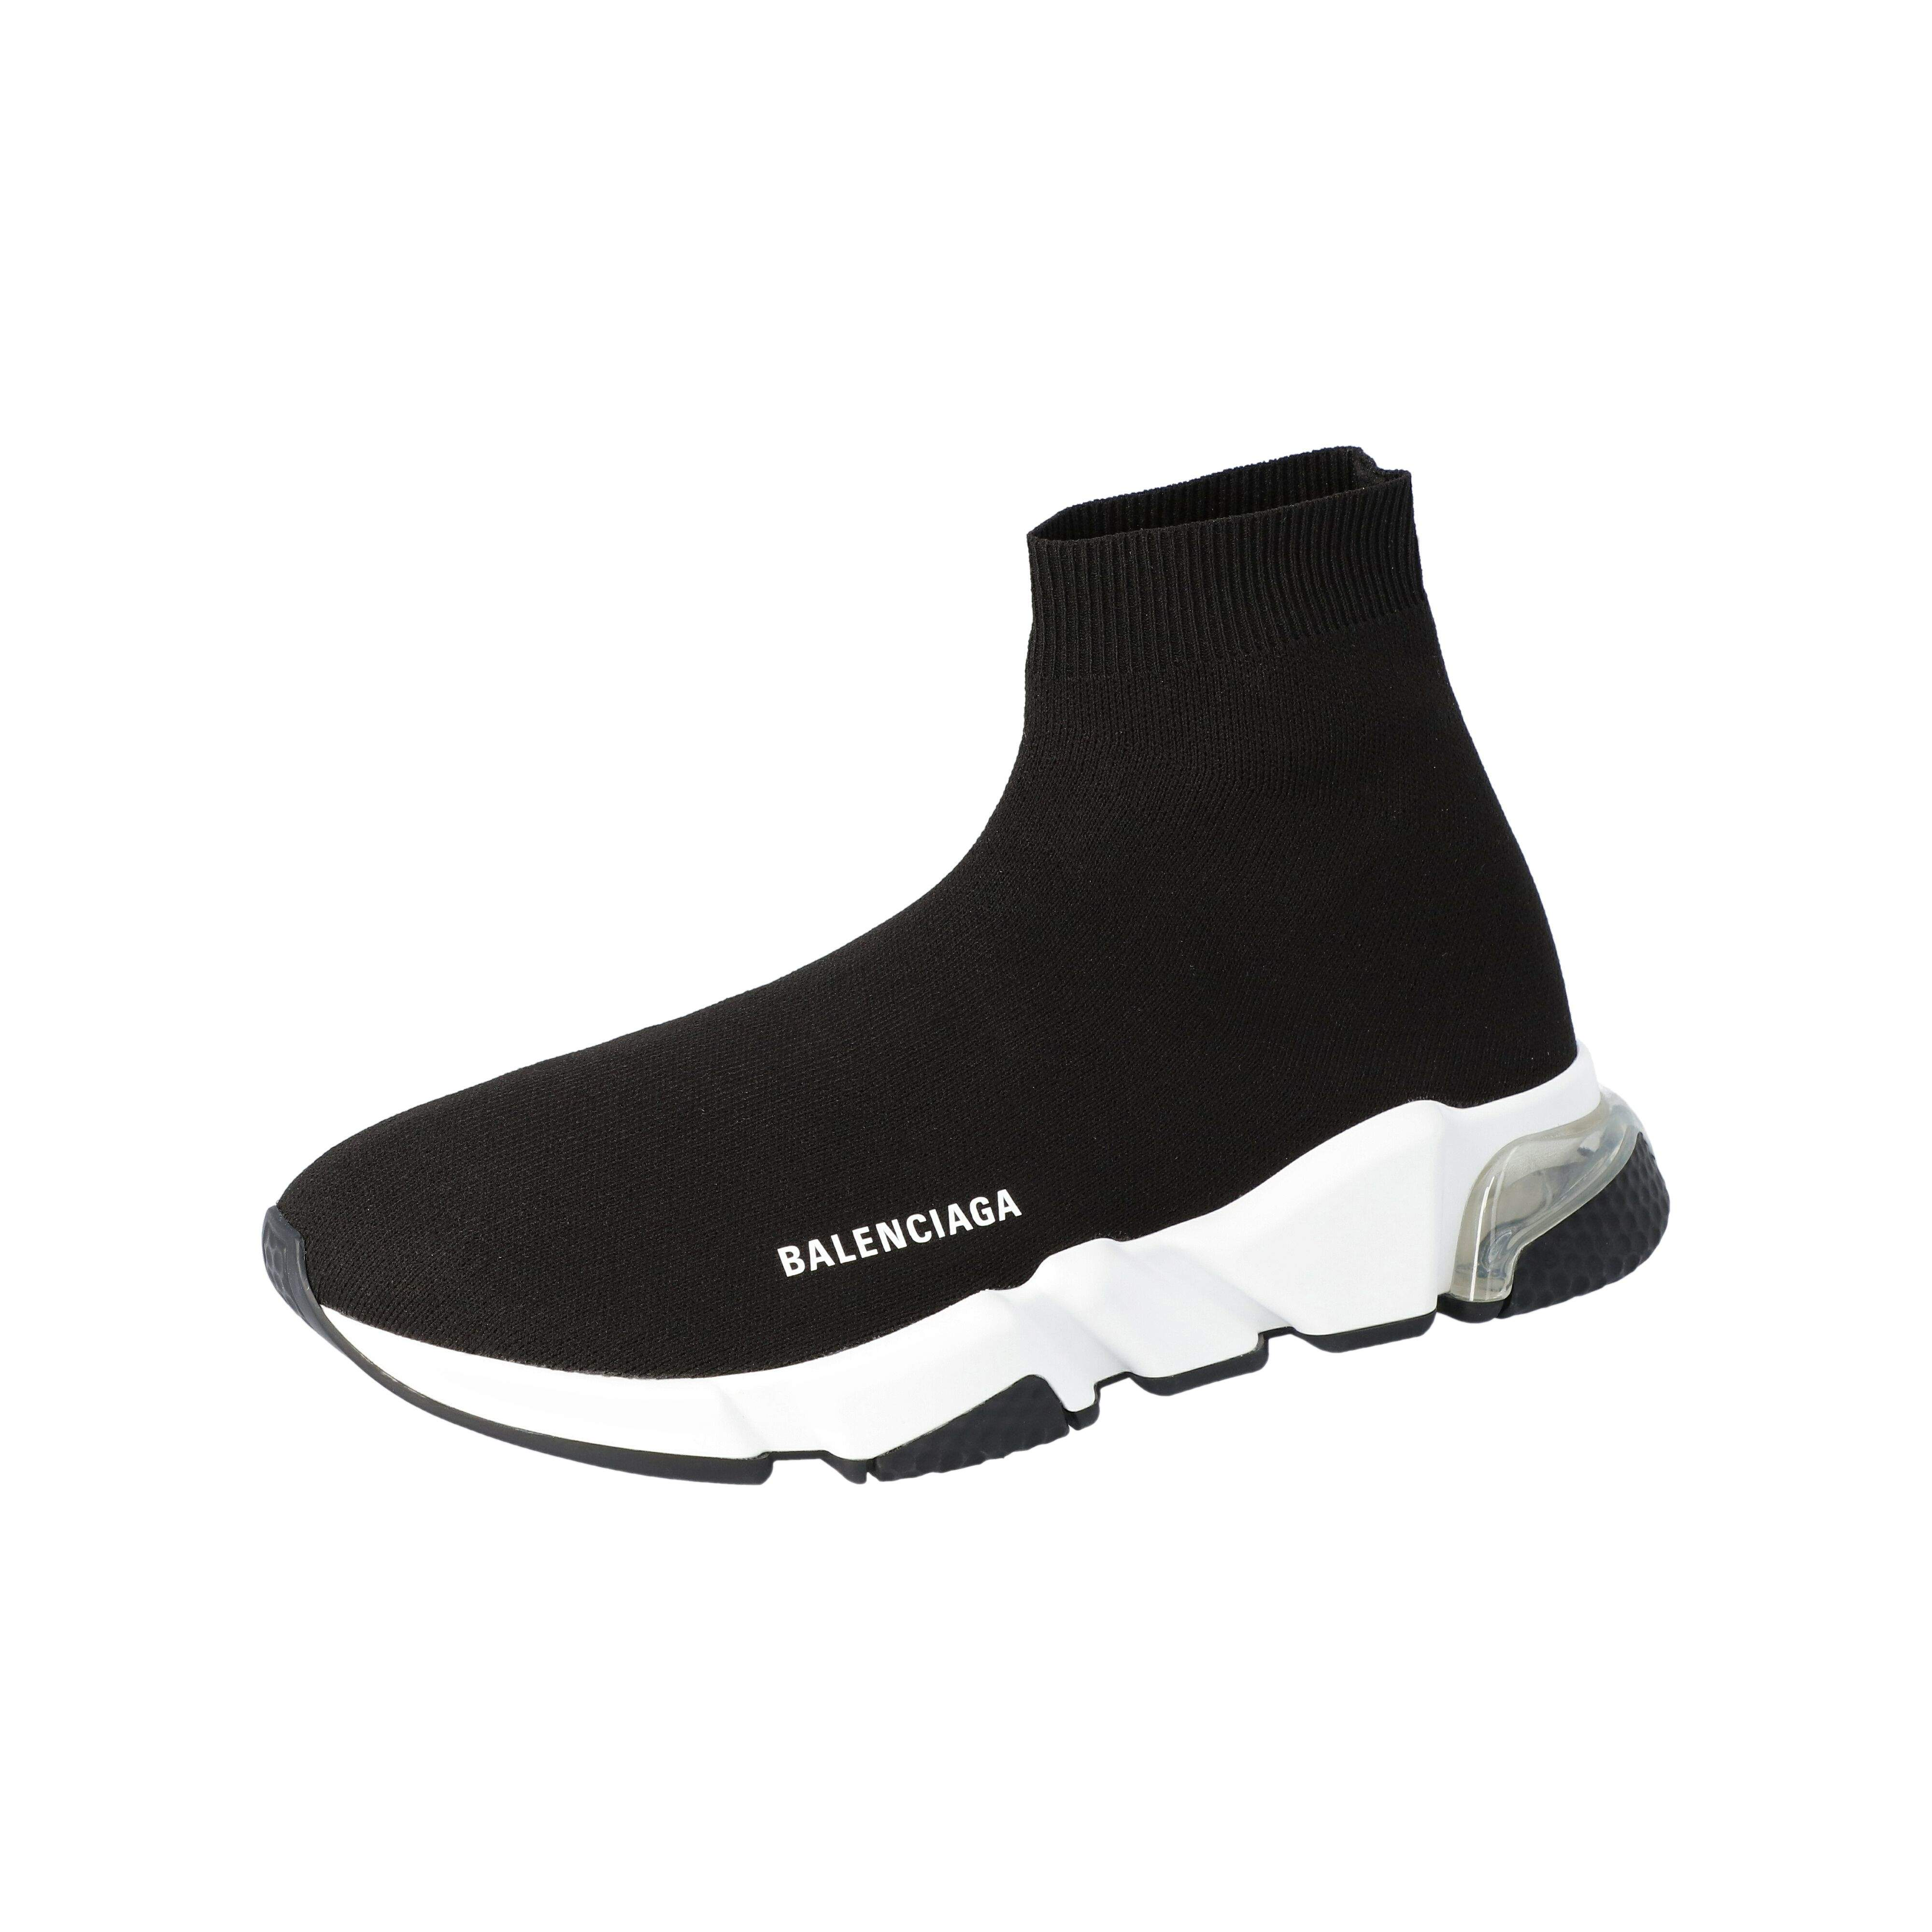 Balenciaga Black Knit Speed Clear Sole Sneakers Size 45